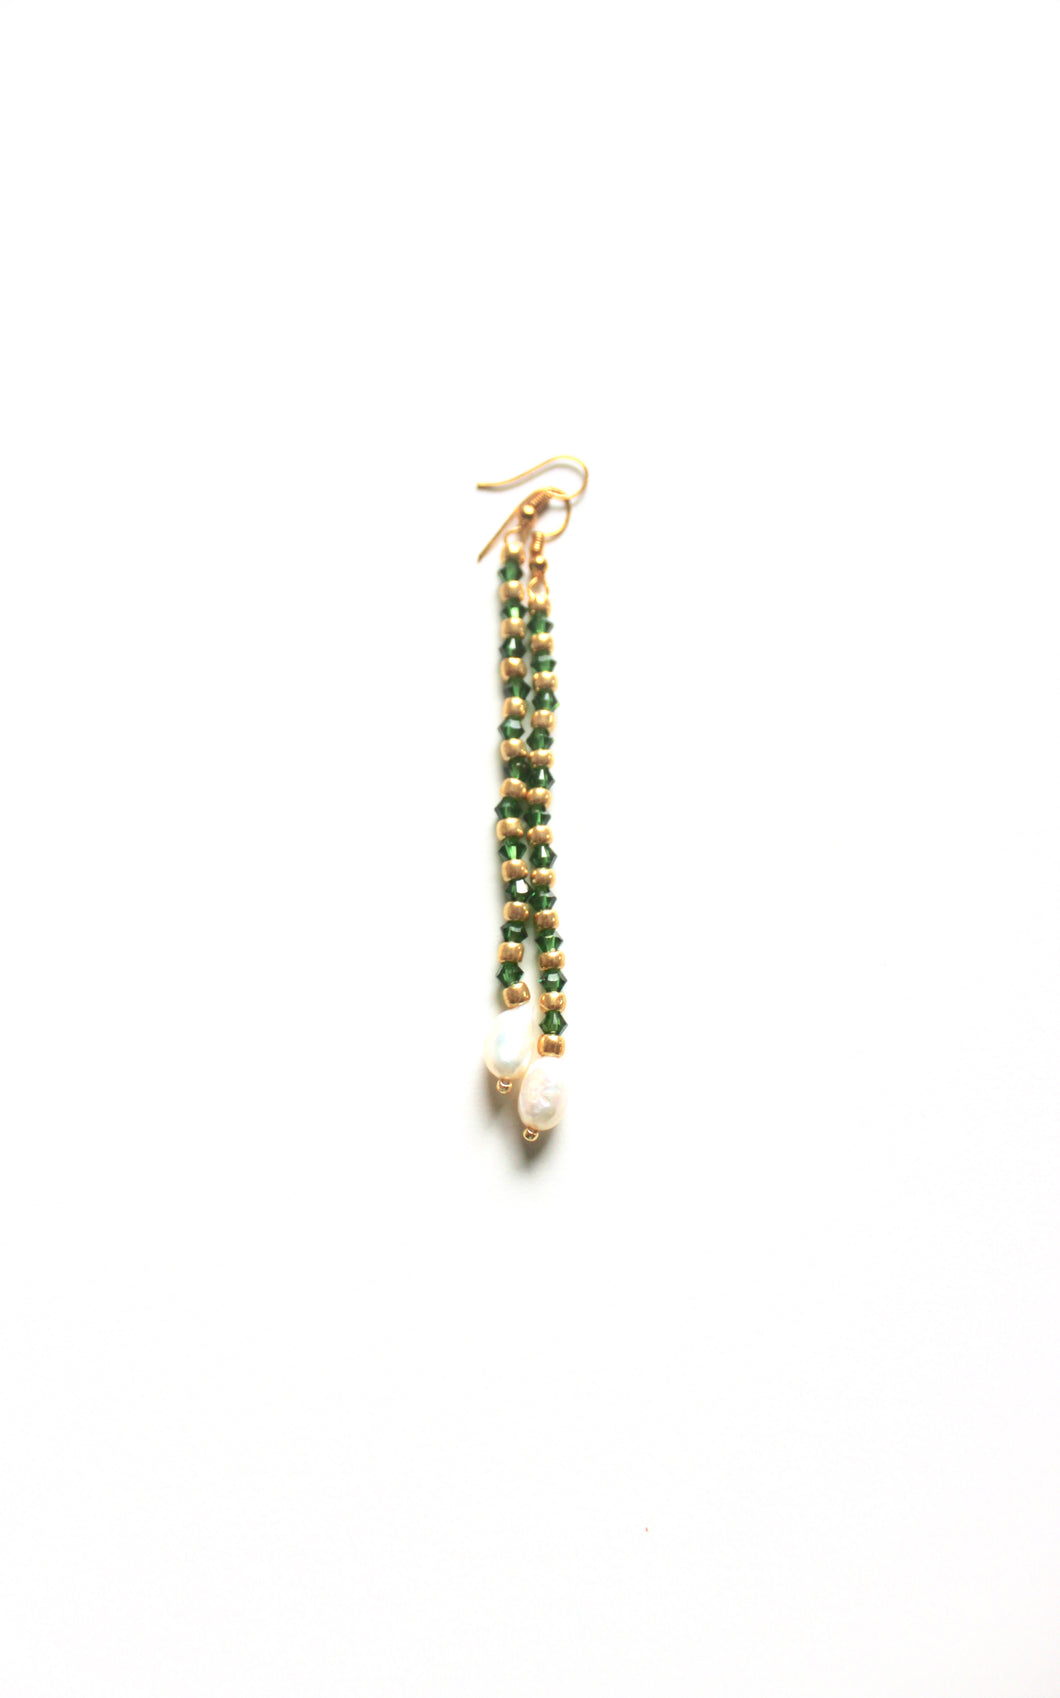 Droplet earring, swarovski green crystal and gold plated beads